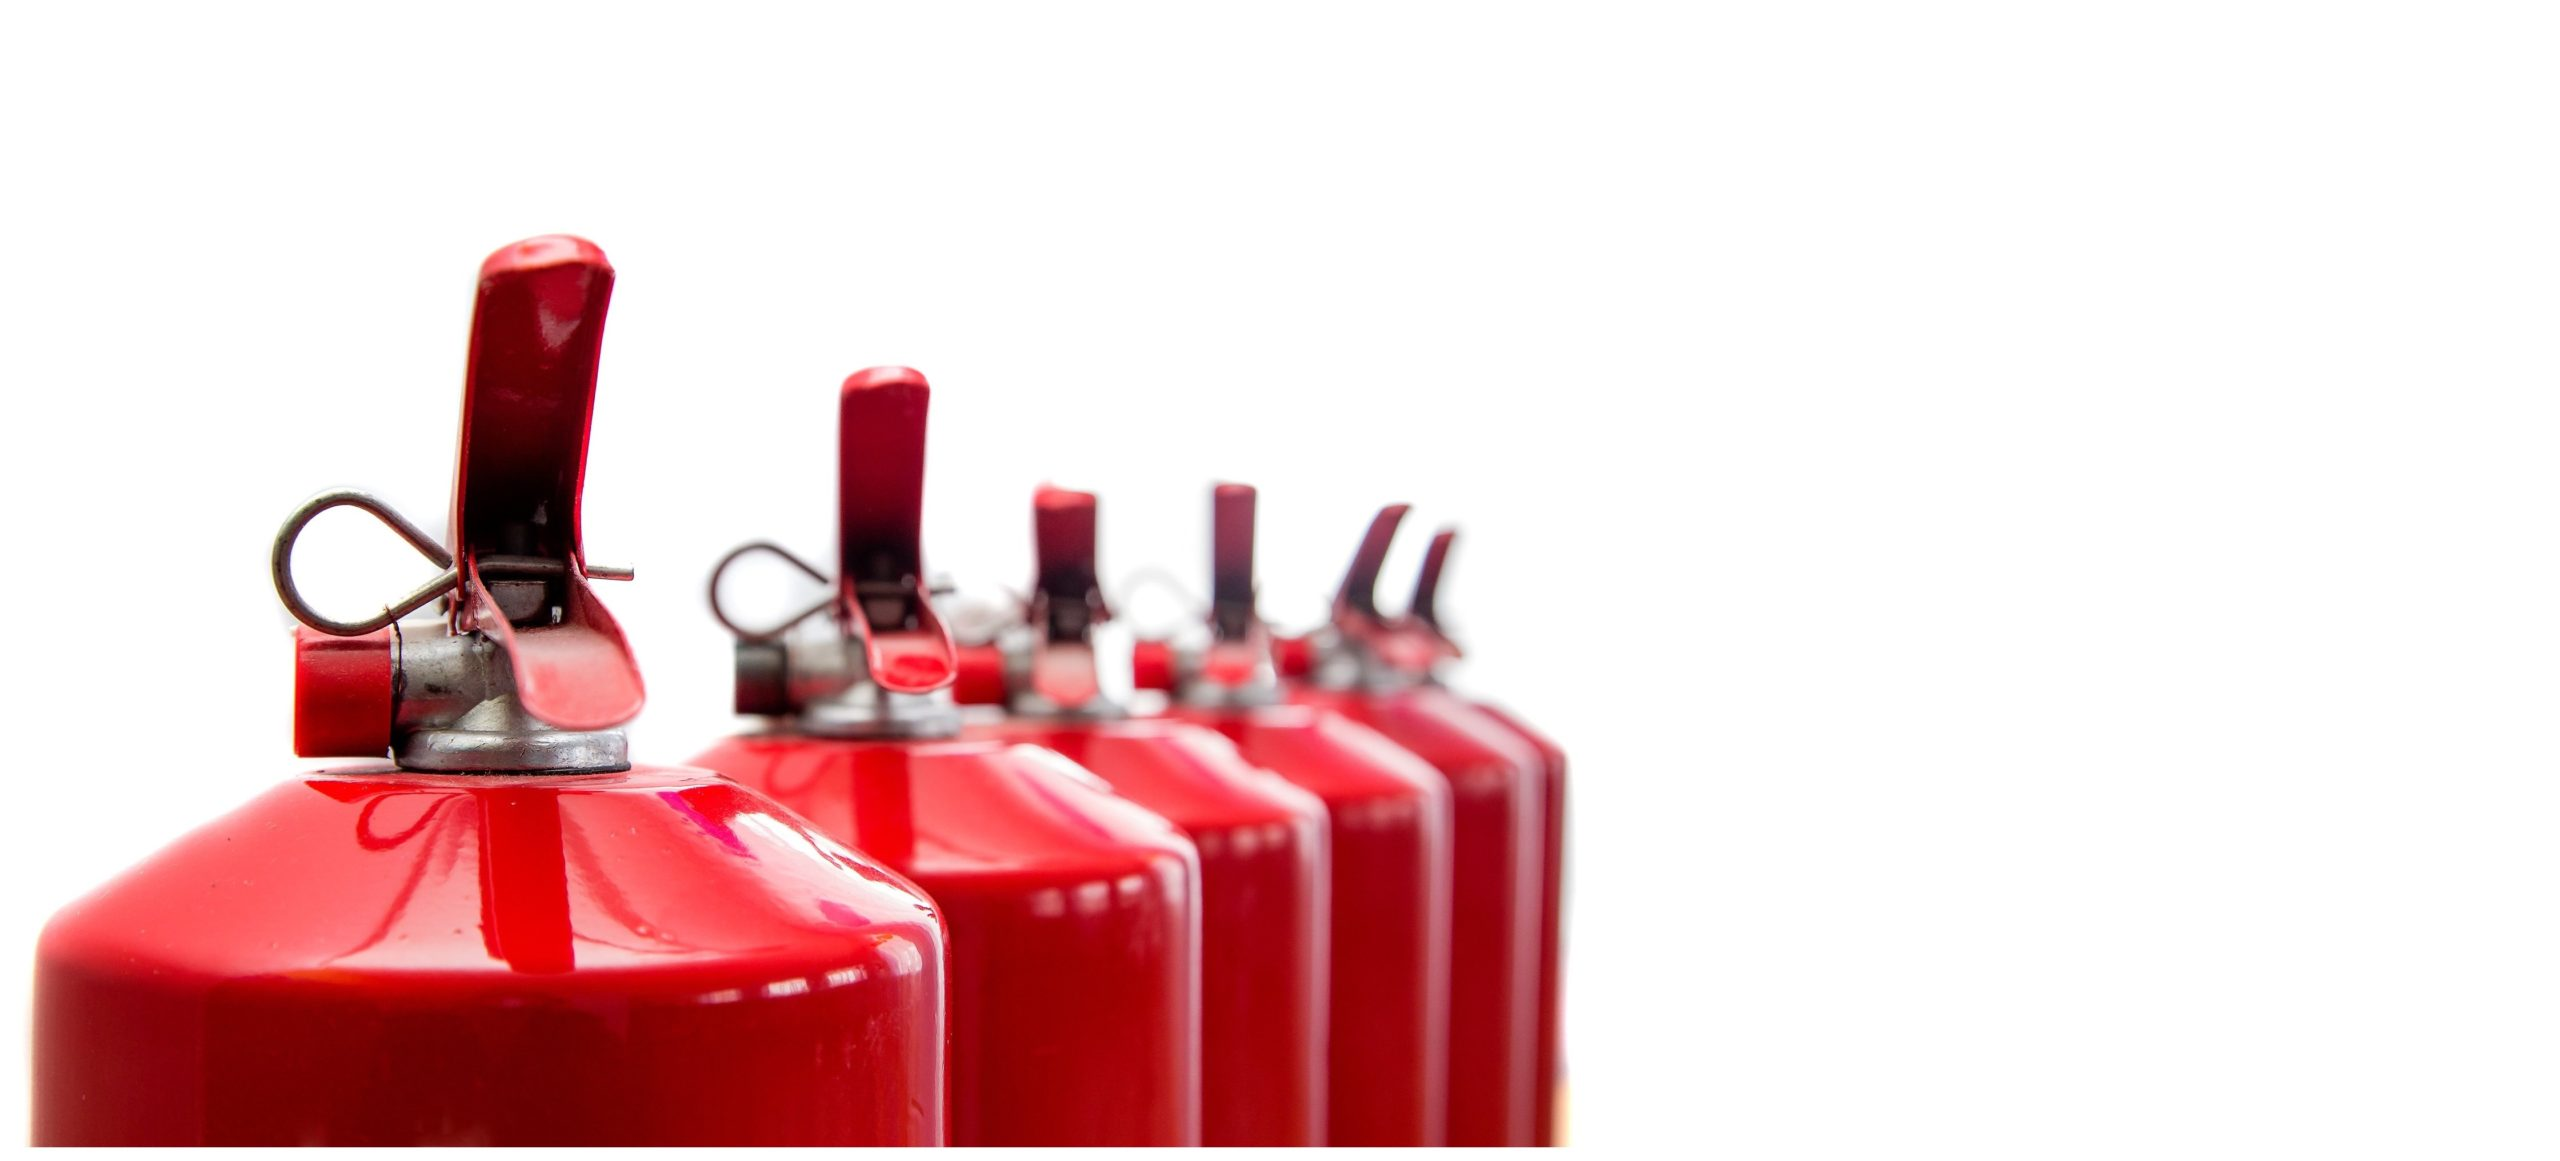 fire-extinguishers-lined-up-row-2